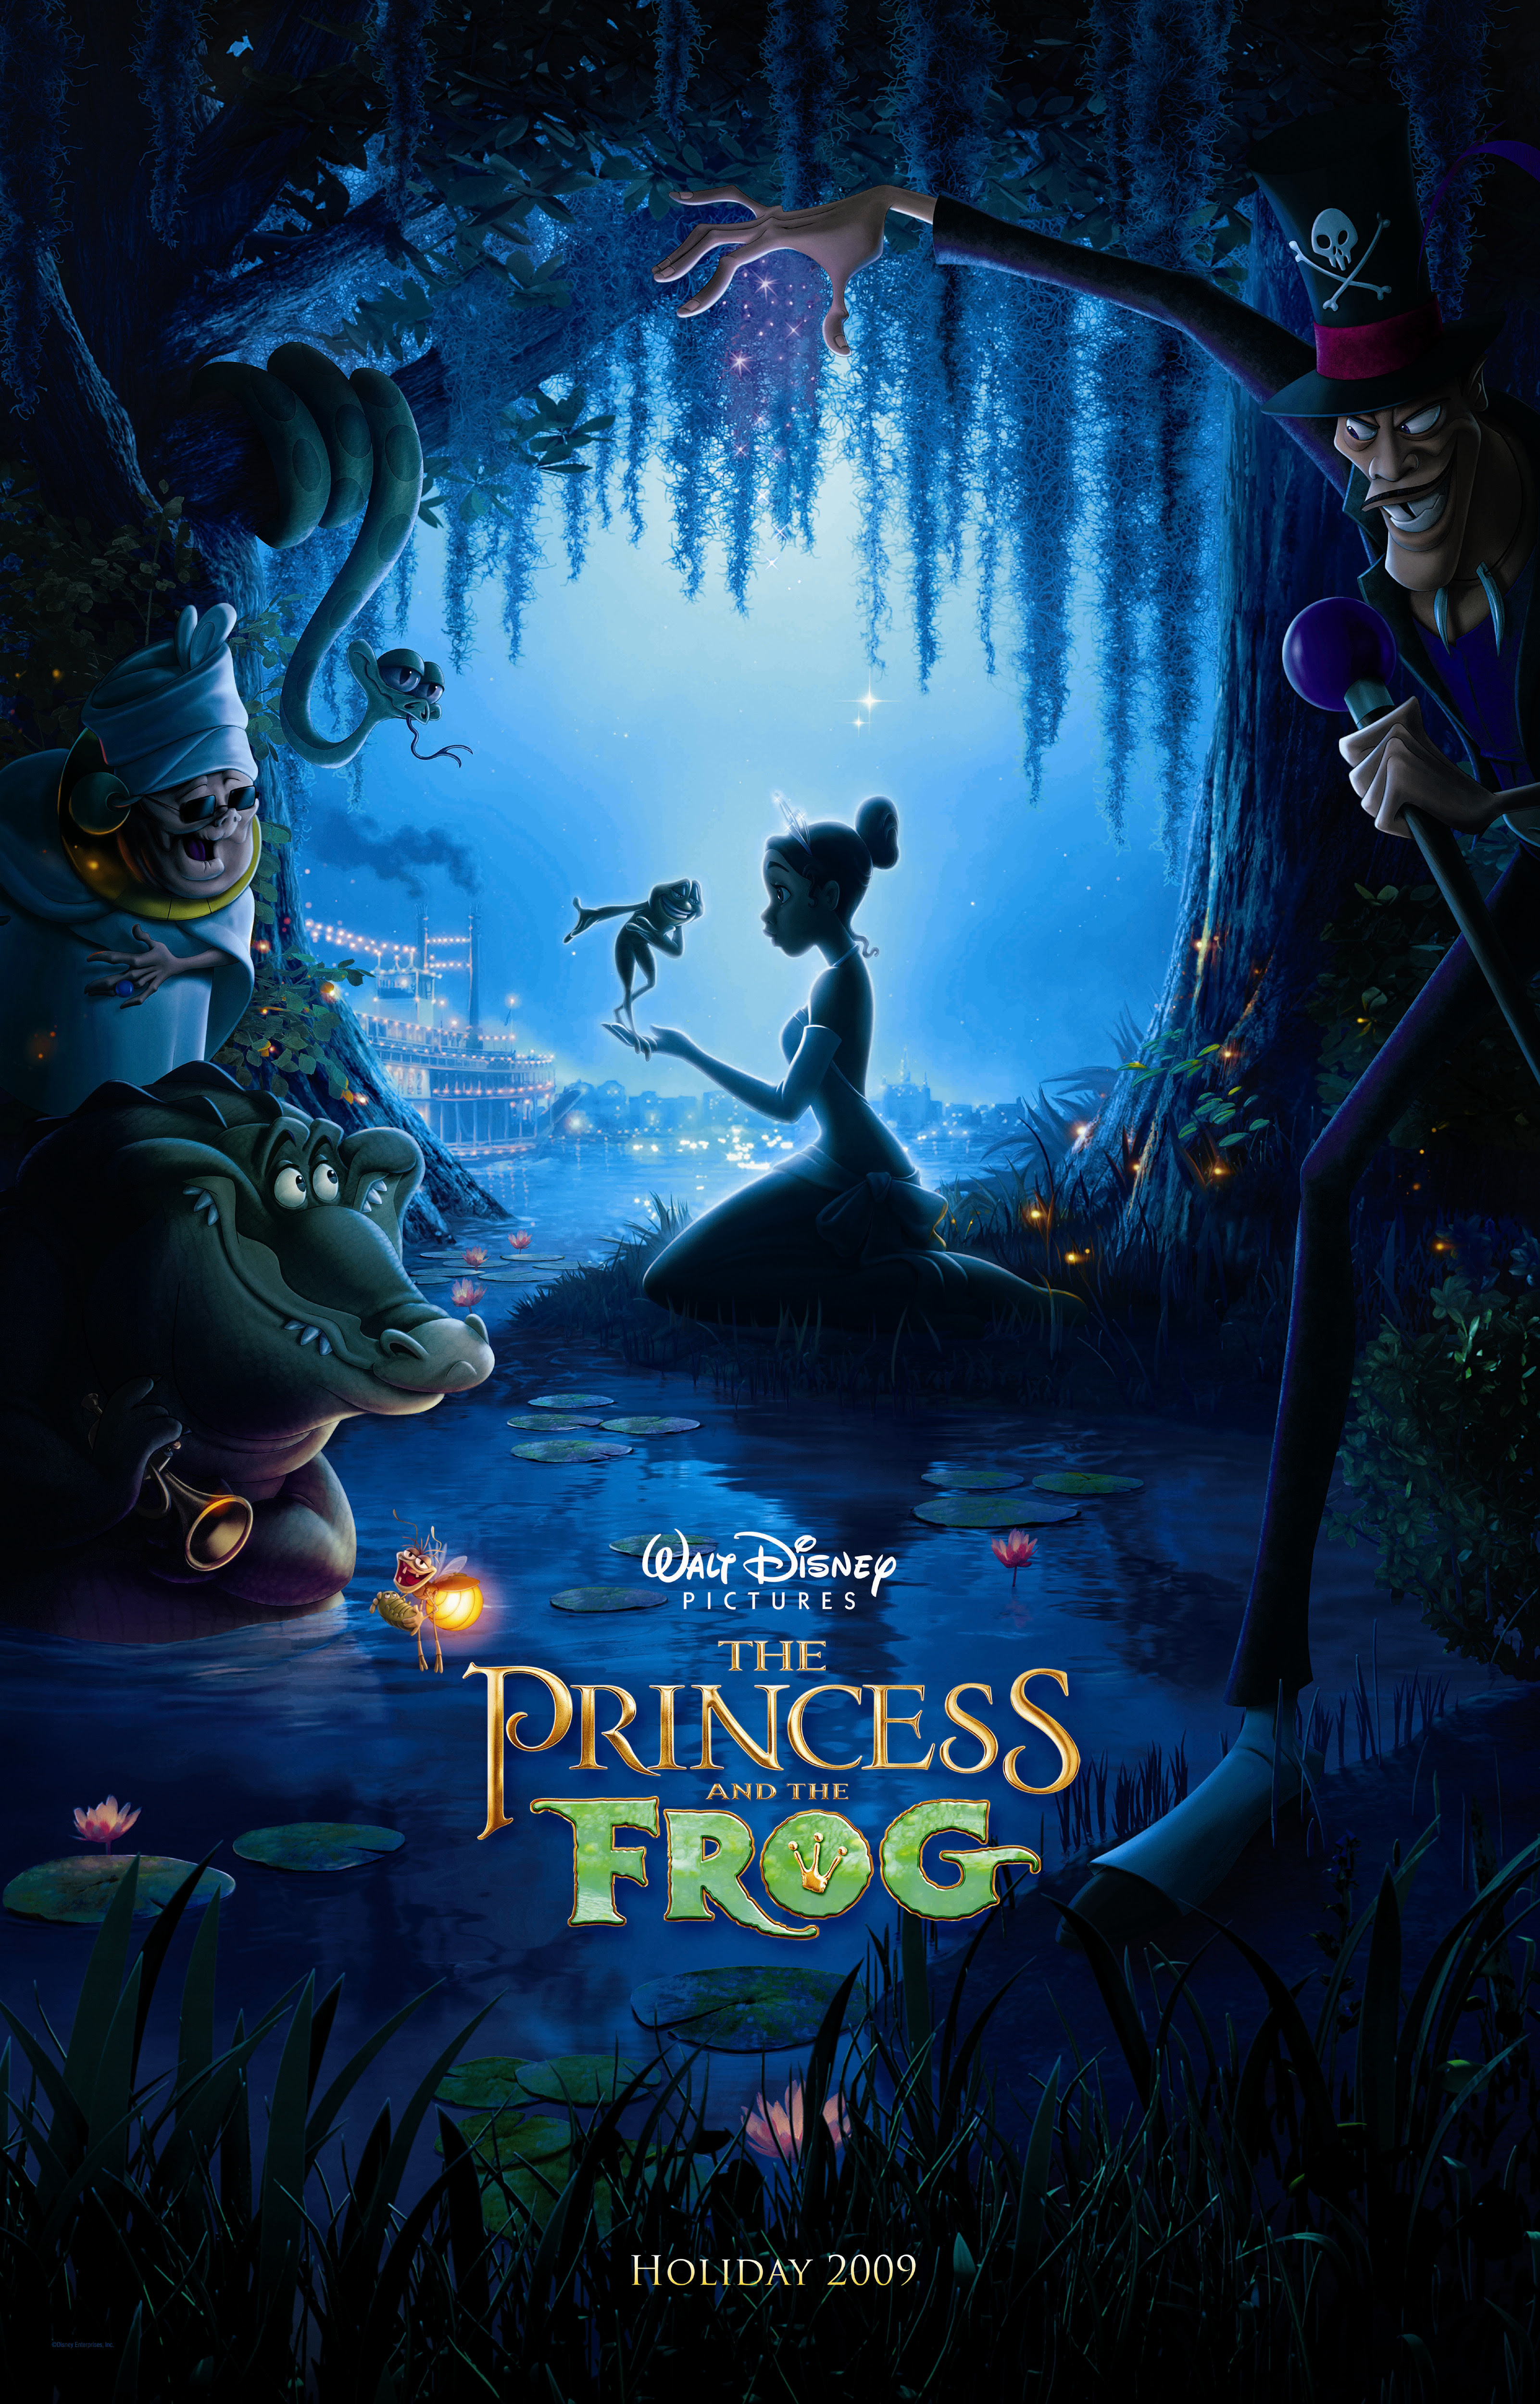 http://vignette1.wikia.nocookie.net/disney/images/f/fa/Frog_official_poster_500.jpg/revision/latest?cb=20120915095456